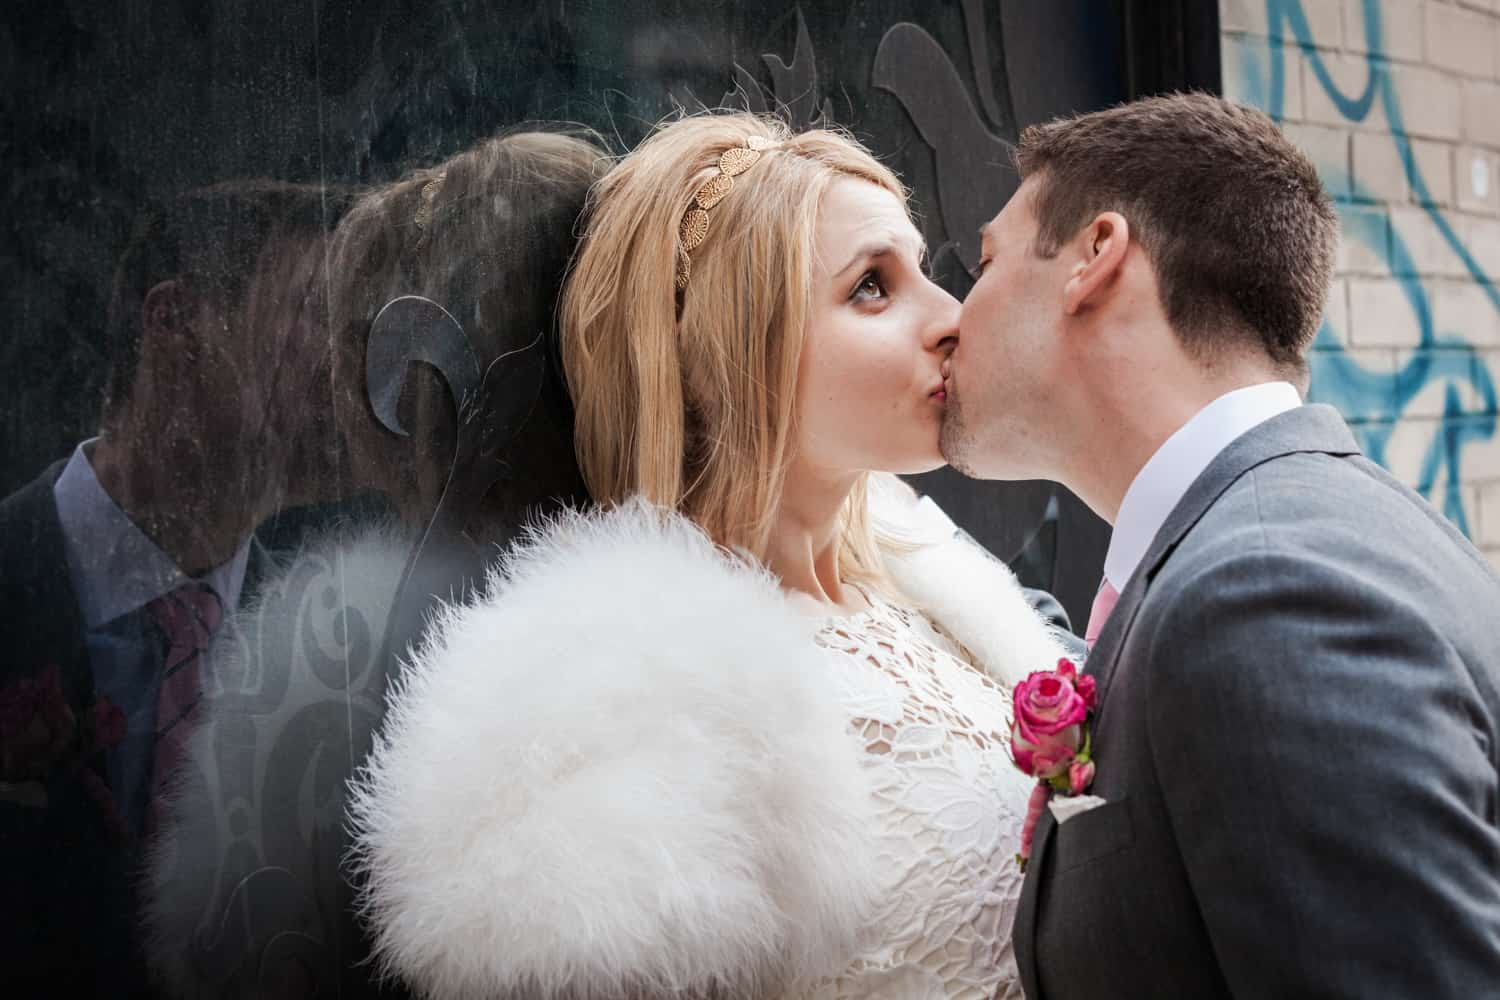 Bride and groom kissing against window